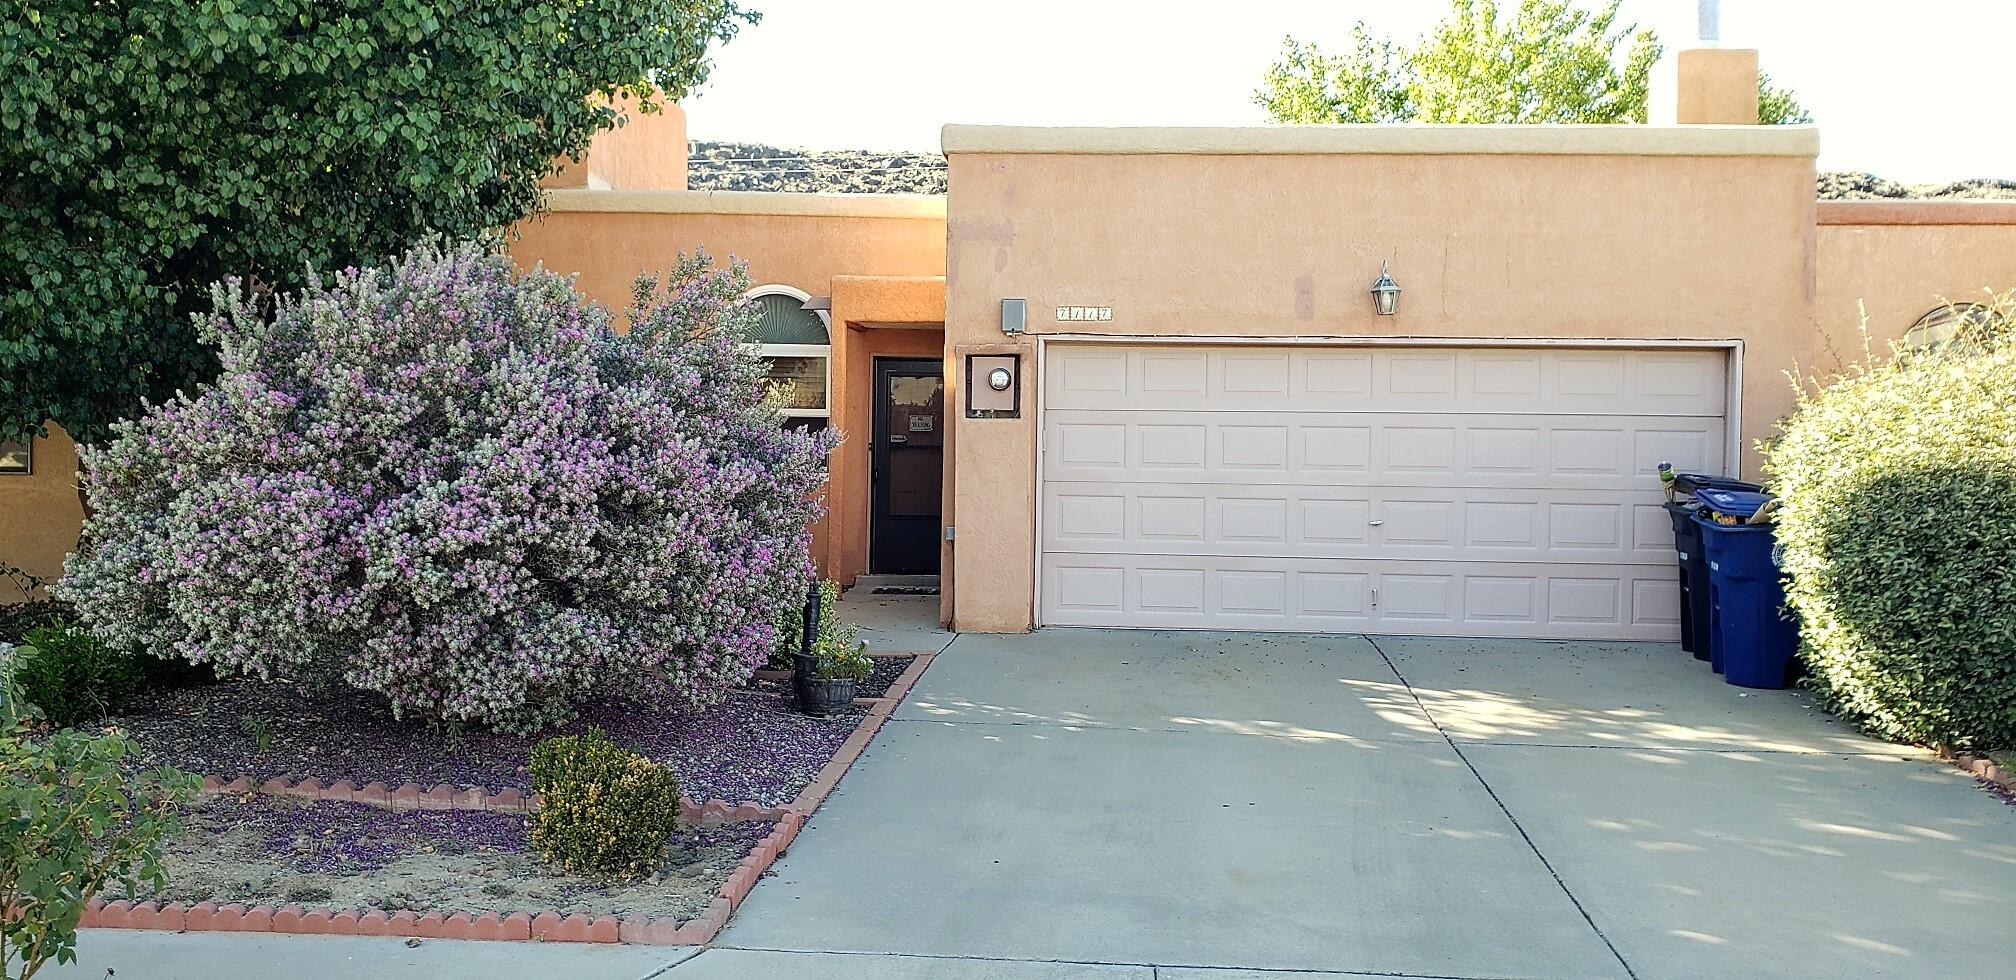 Wonderful Town Home with open Floor Plan!This nice home offers vaulted ceilings, a large great room with open dining area and nice granite counter tops with custom tile backsplash in Kitchen as well as a Private Patio. Low maintenance back yard and large two car Garage. Water lines have been replaced.